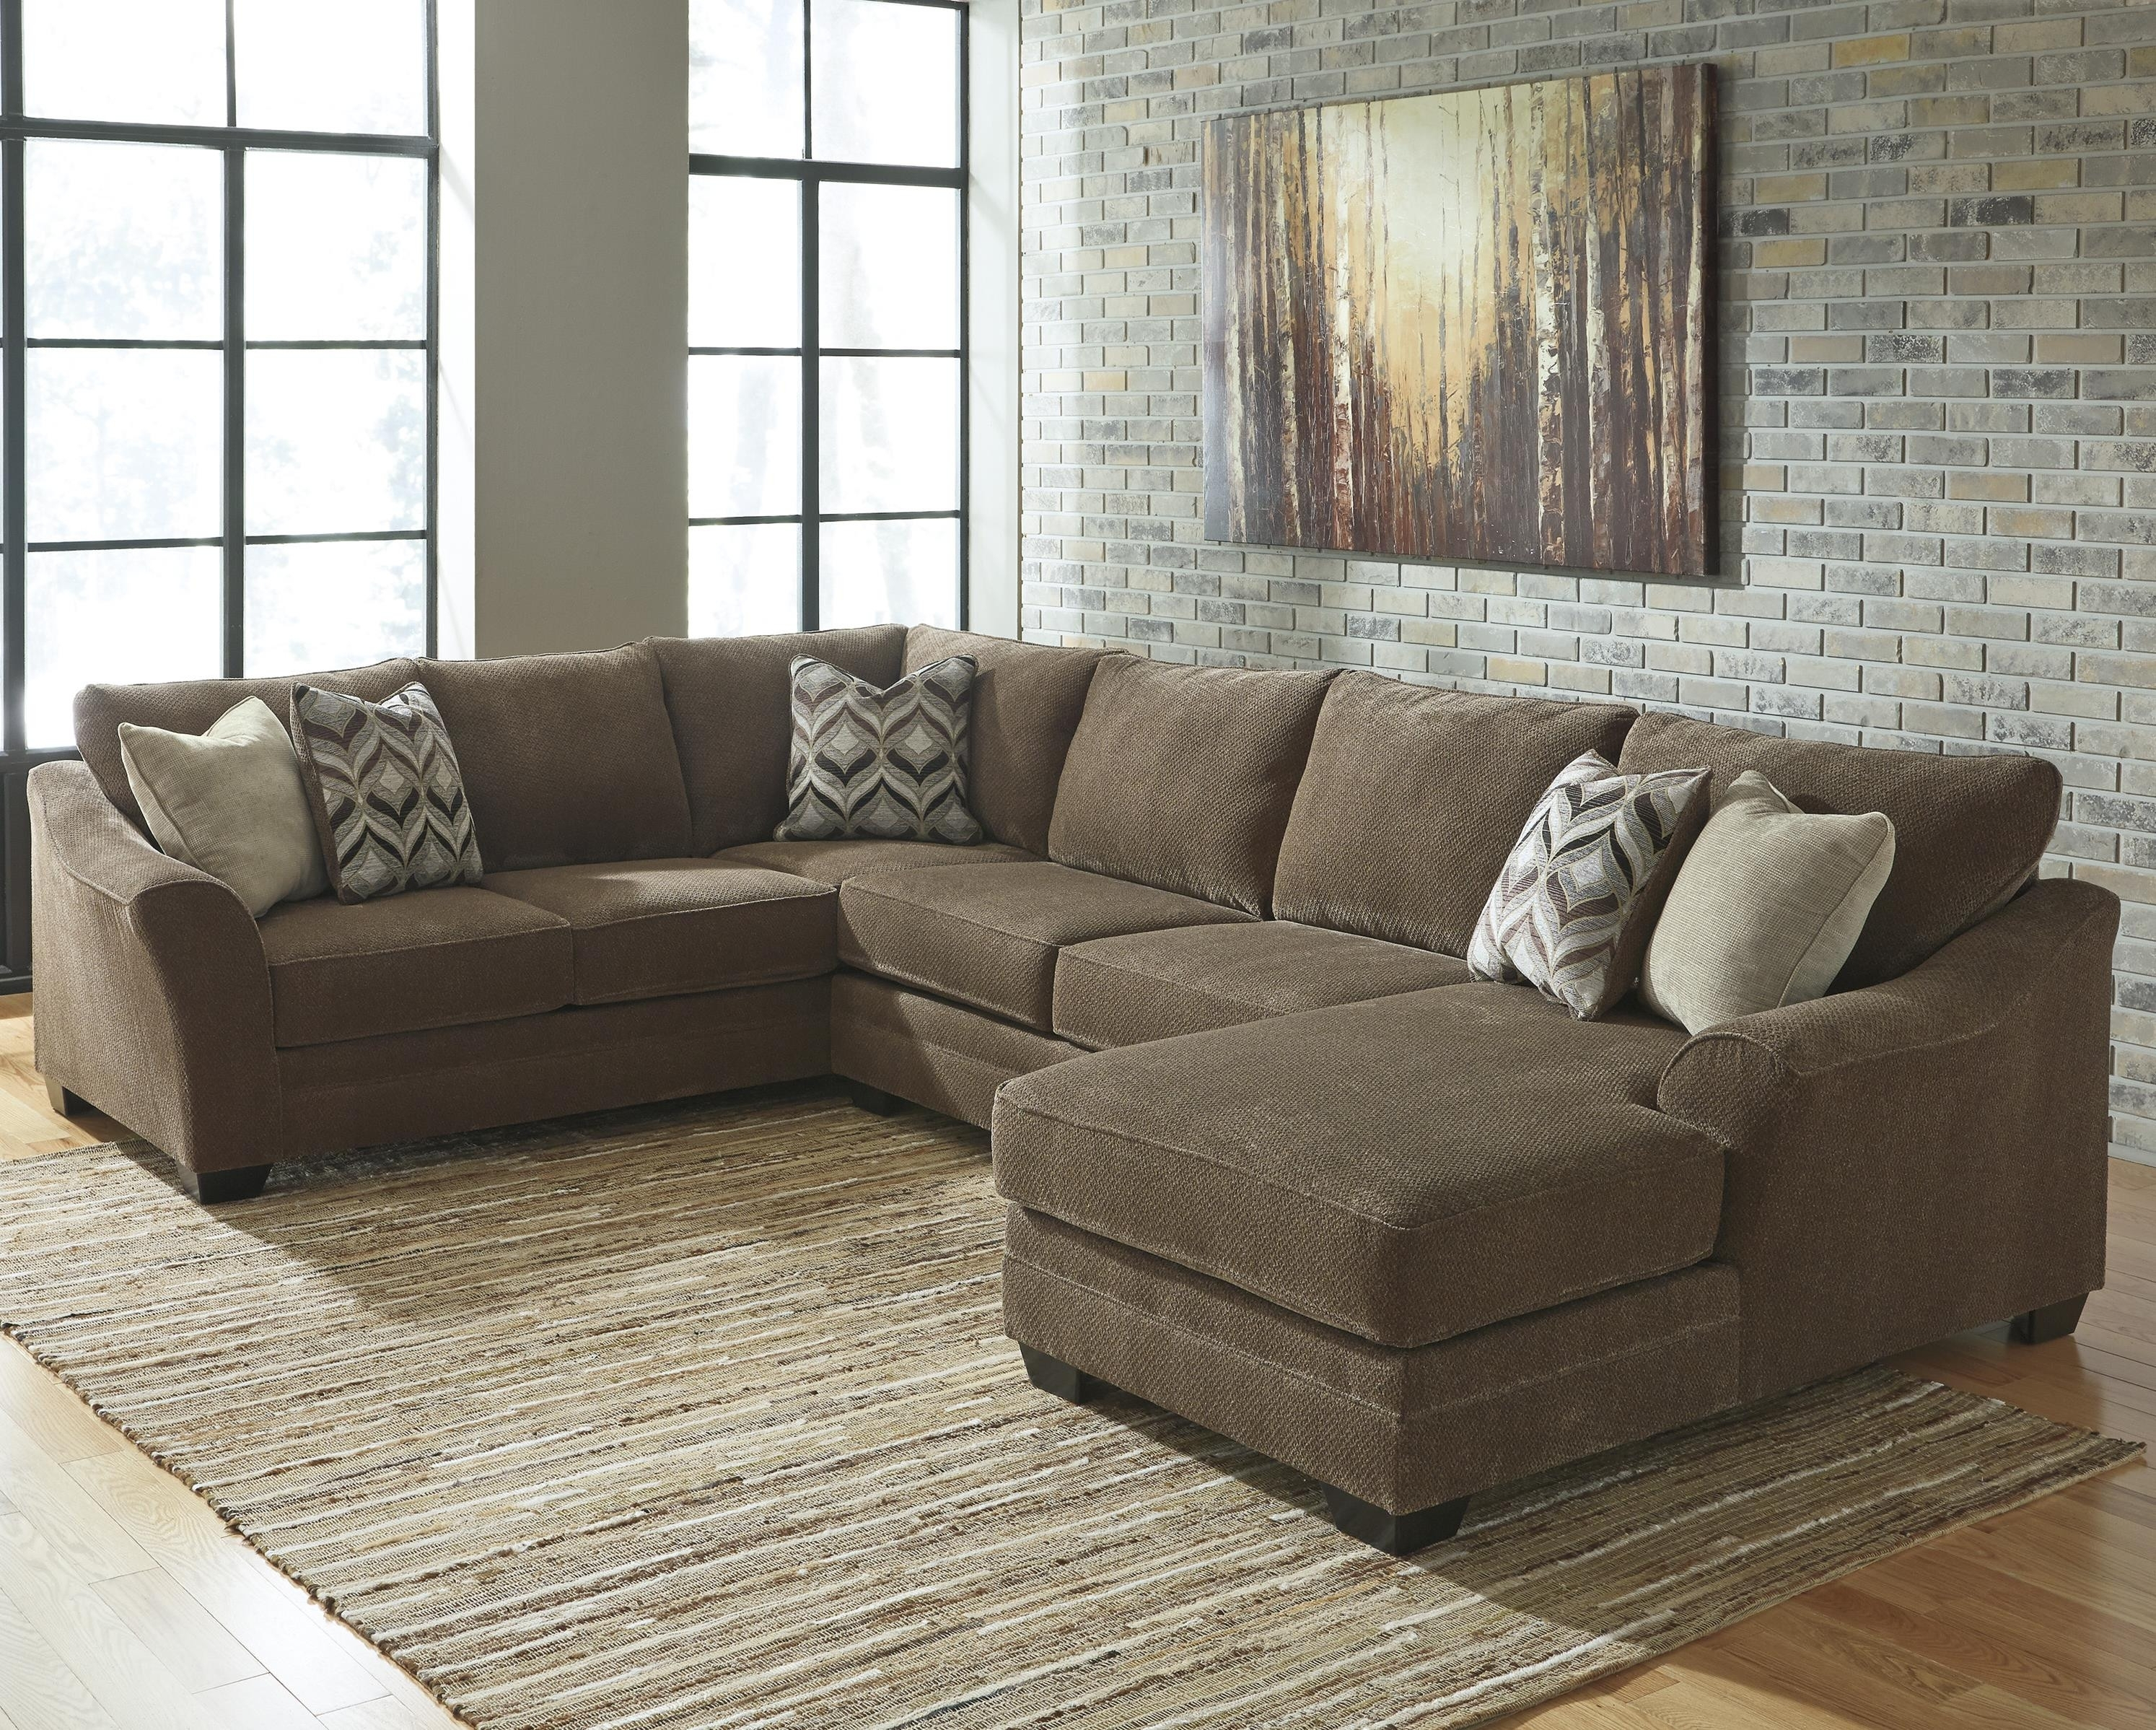 Elegant 3 Piece Microfiber Sectional Sofa – Buildsimplehome For Sierra Down 3 Piece Sectionals With Laf Chaise (View 21 of 25)